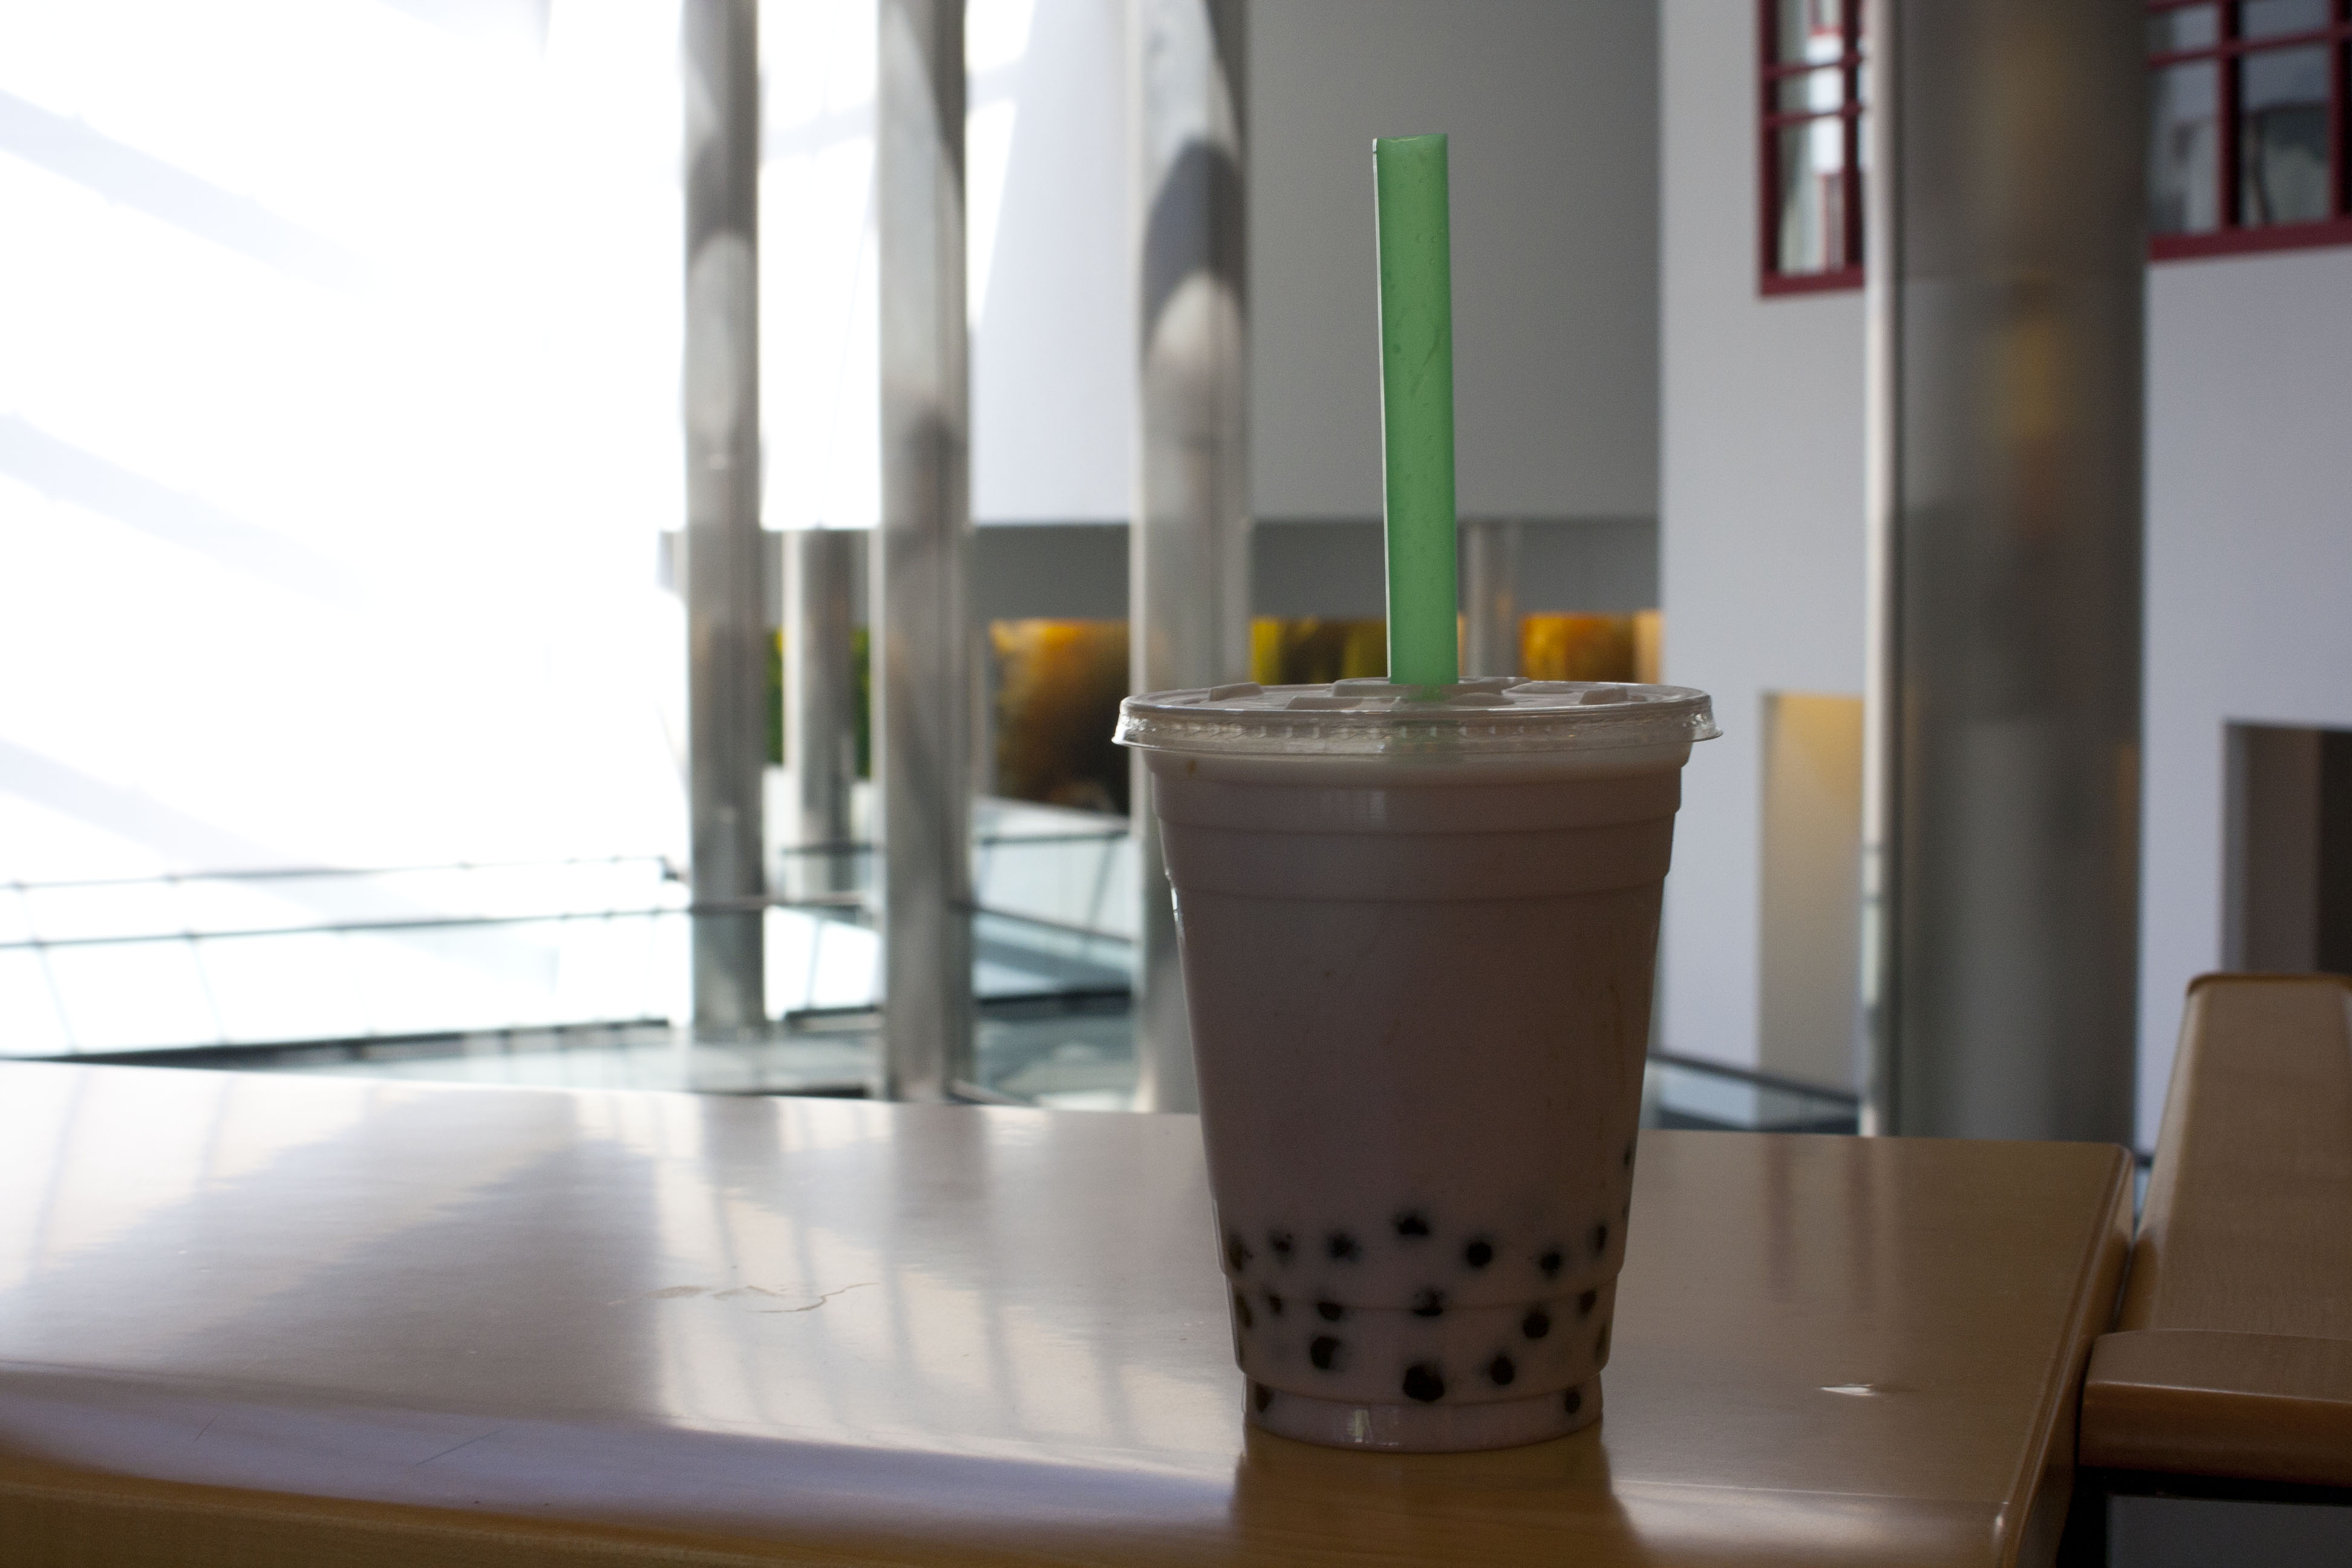 Bubble tea, made with small, chewy tapioca balls that are sucked up through a straw.